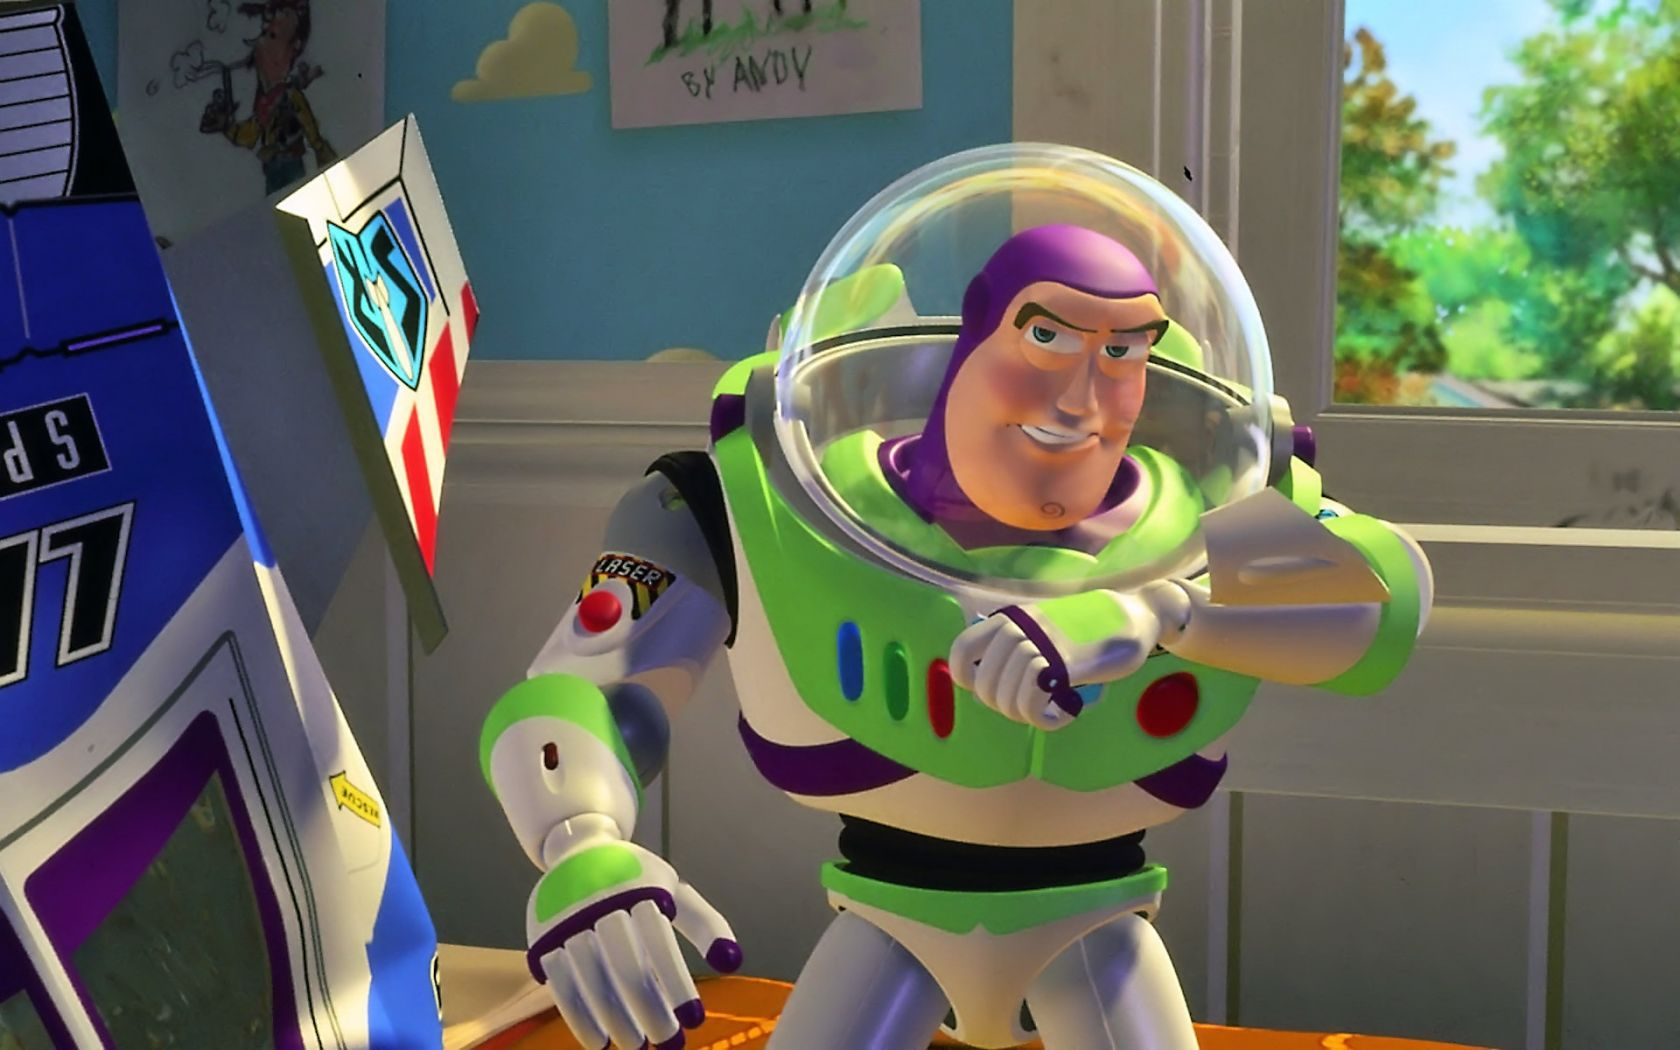 Buzz Lightyear Speaking On Wrist Radio Wallpaper 1680x1050